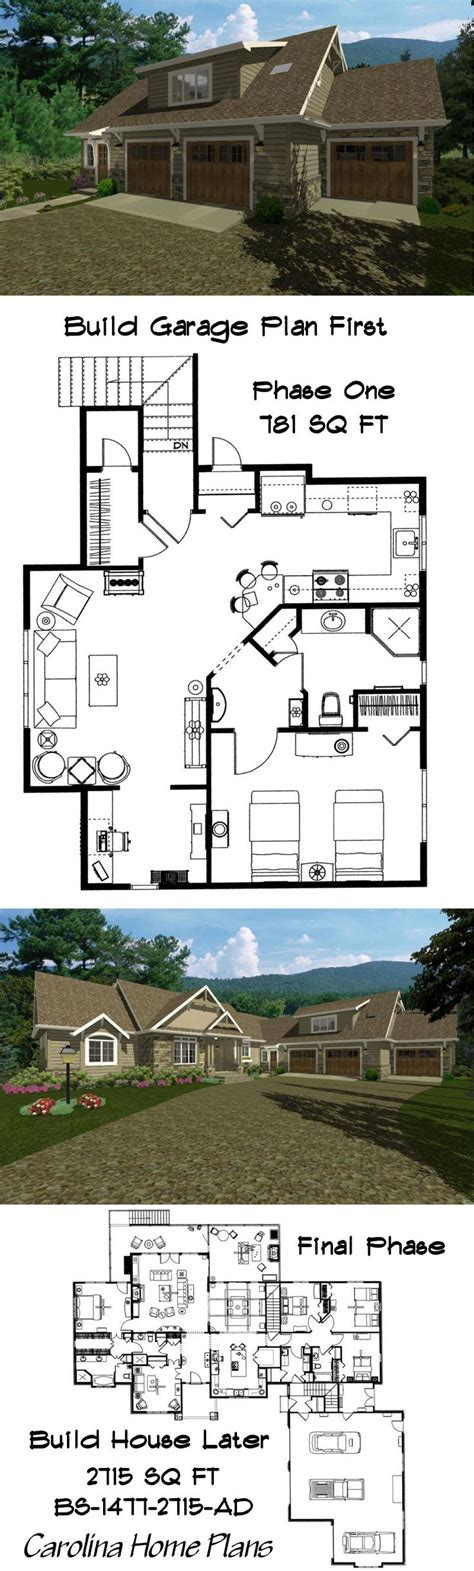 25 delightful sle home plans home building plans 68618 best 25 1 bedroom house plans ideas on pinterest small